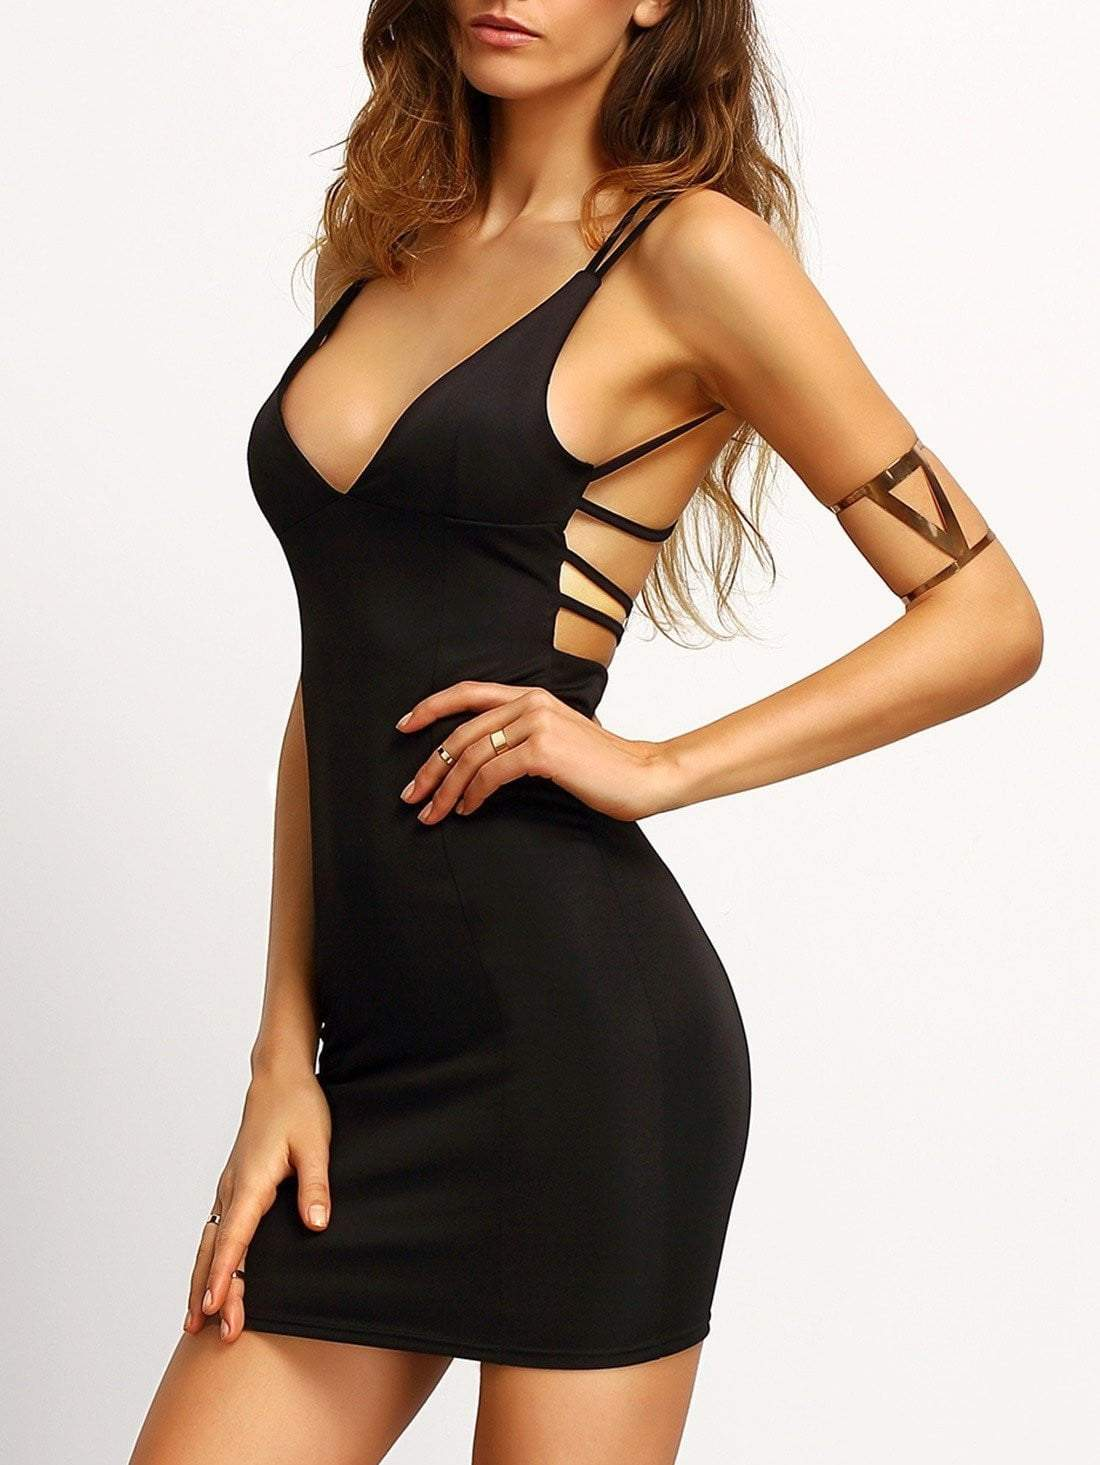 Black Crisscross Back Bodycon Dress - Dresses - Zooomberg - Zoomberg